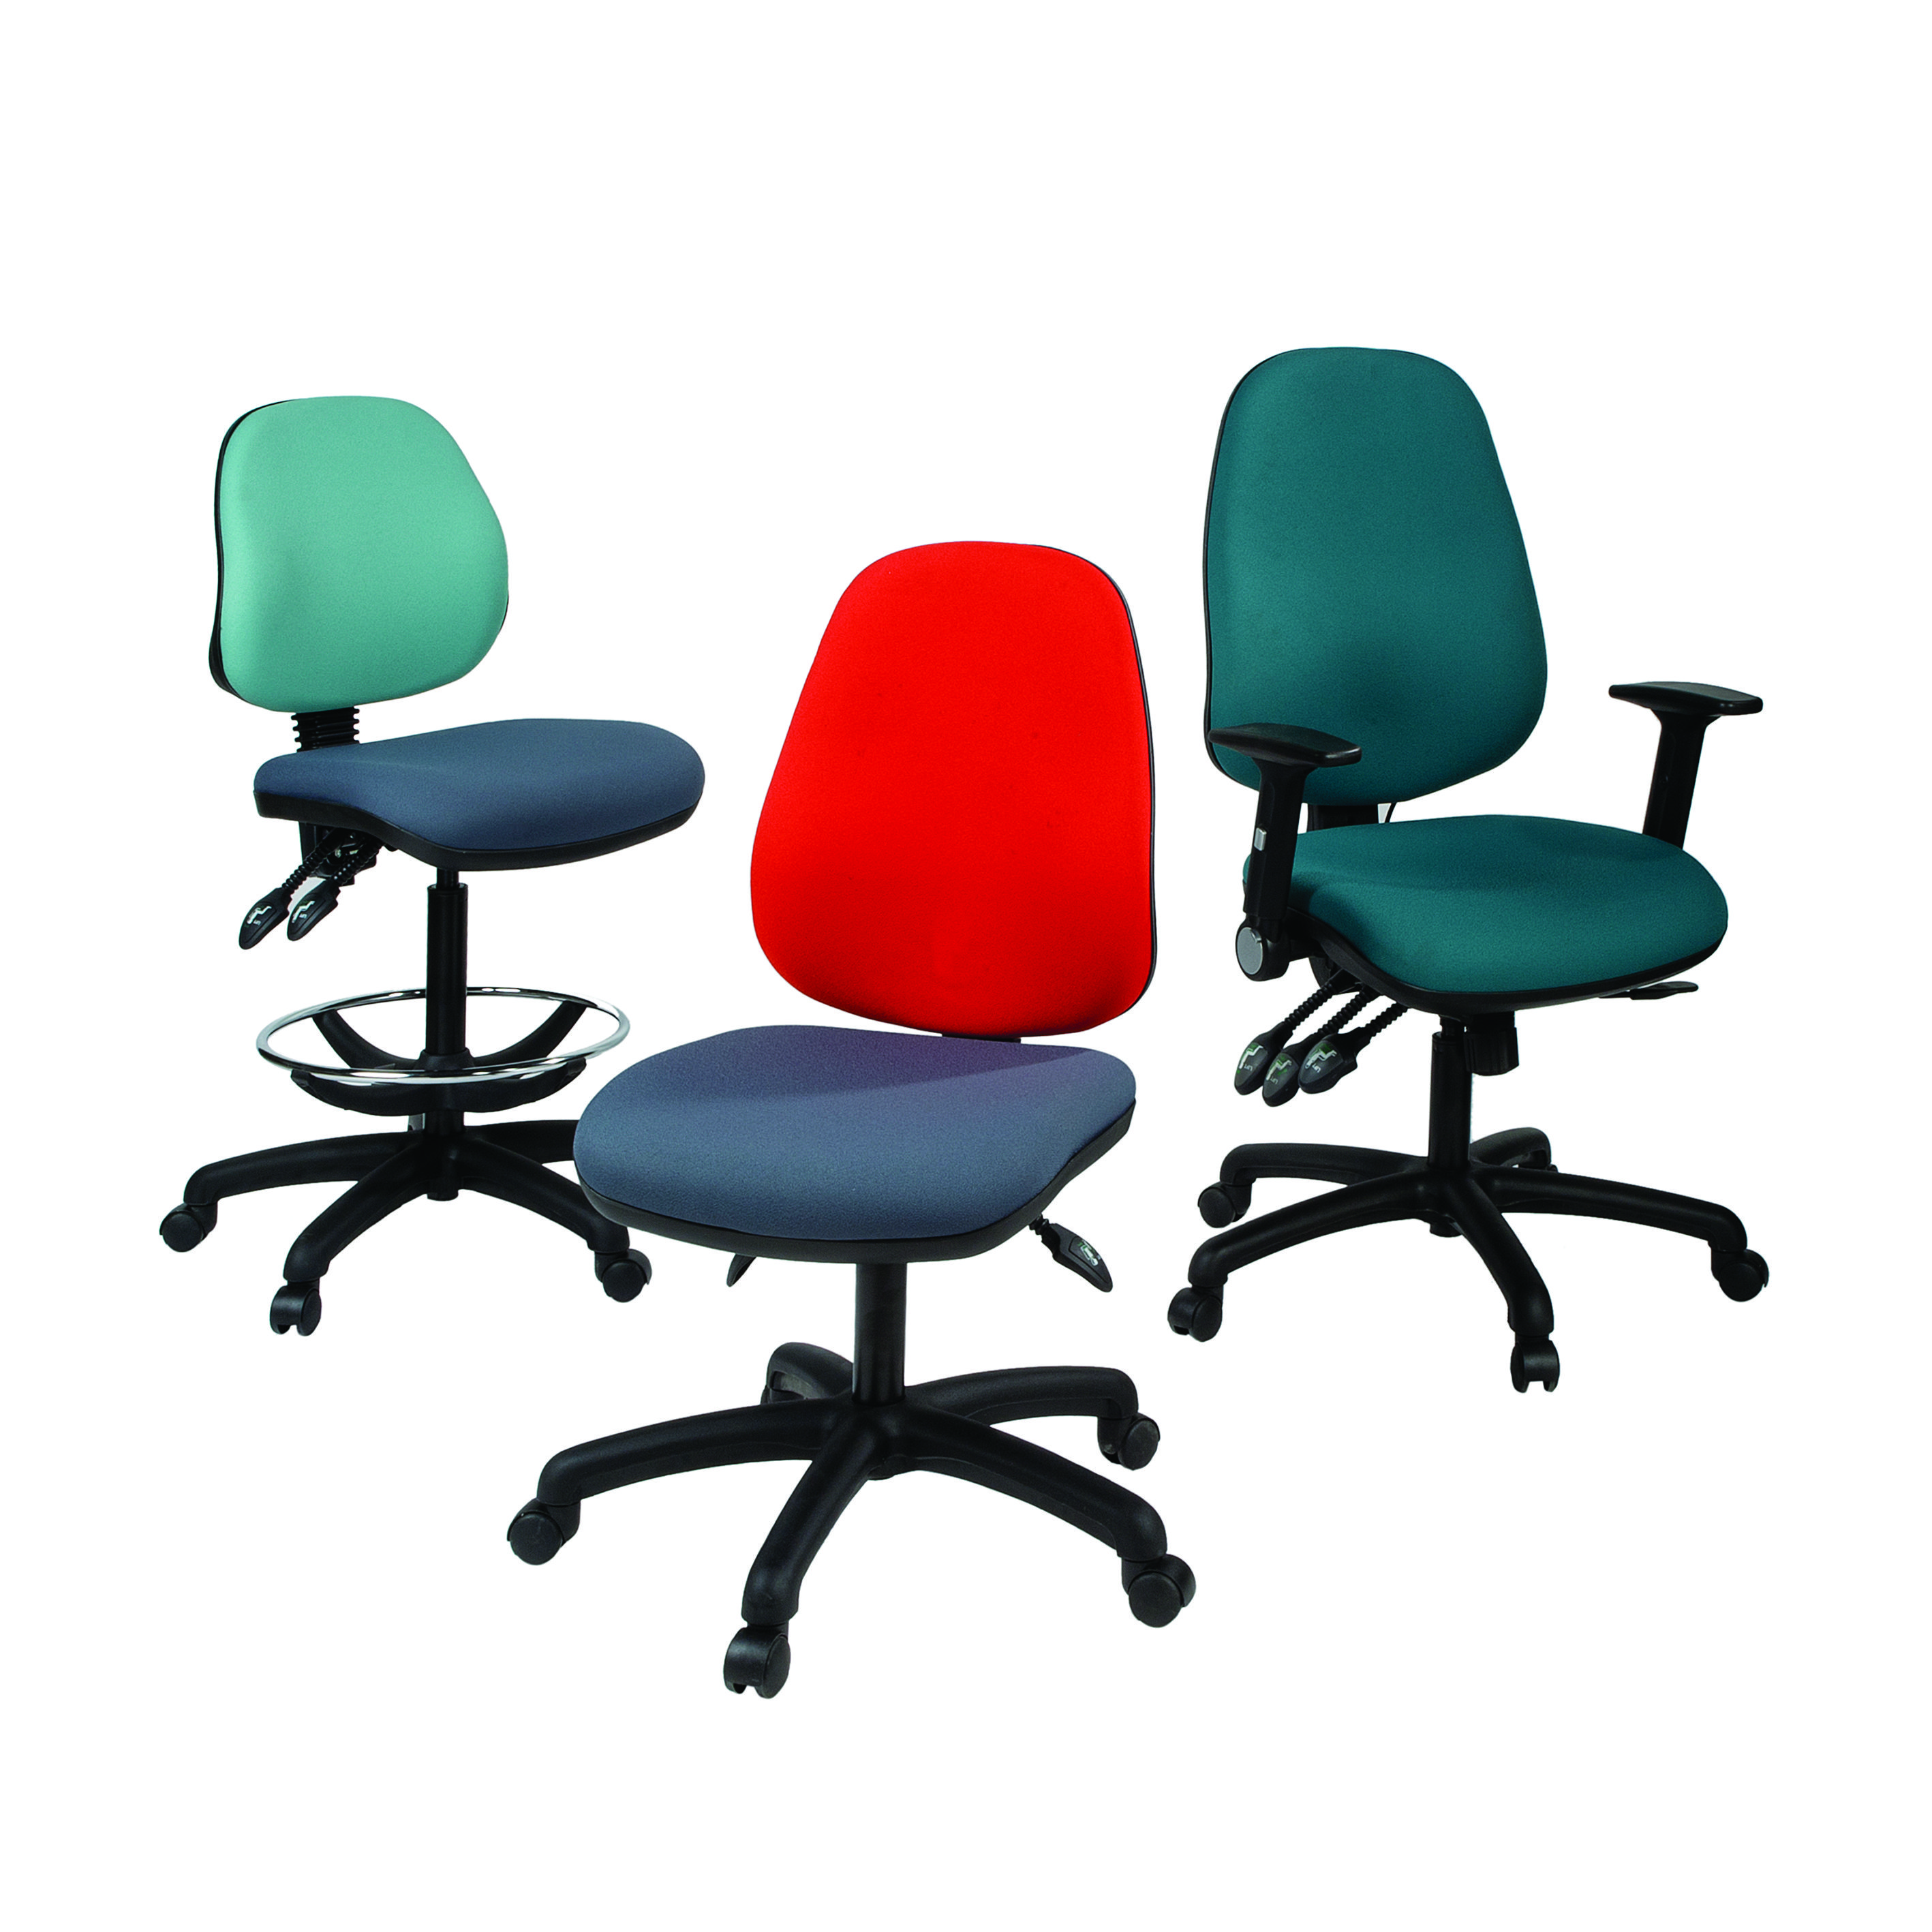 Classic Operator Chairs Office Seating Chair Office Chair